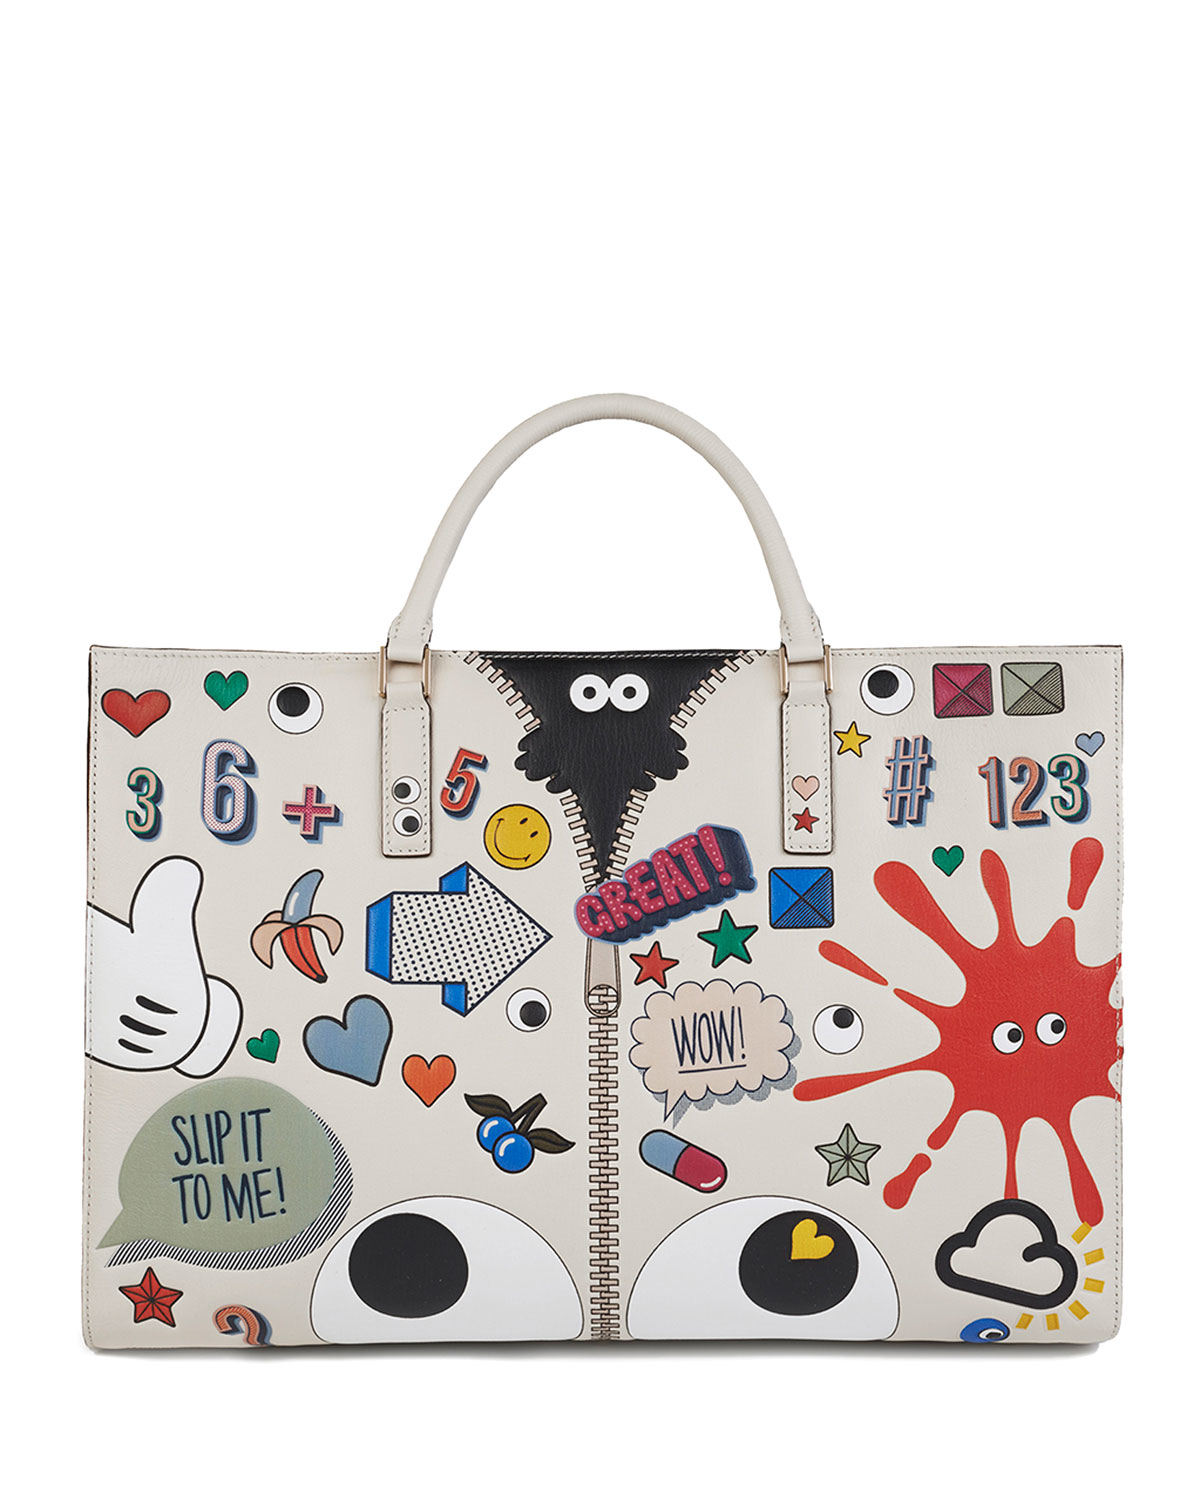 Anya hindmarch Ebury Sticker print Leather Tote Bag Save